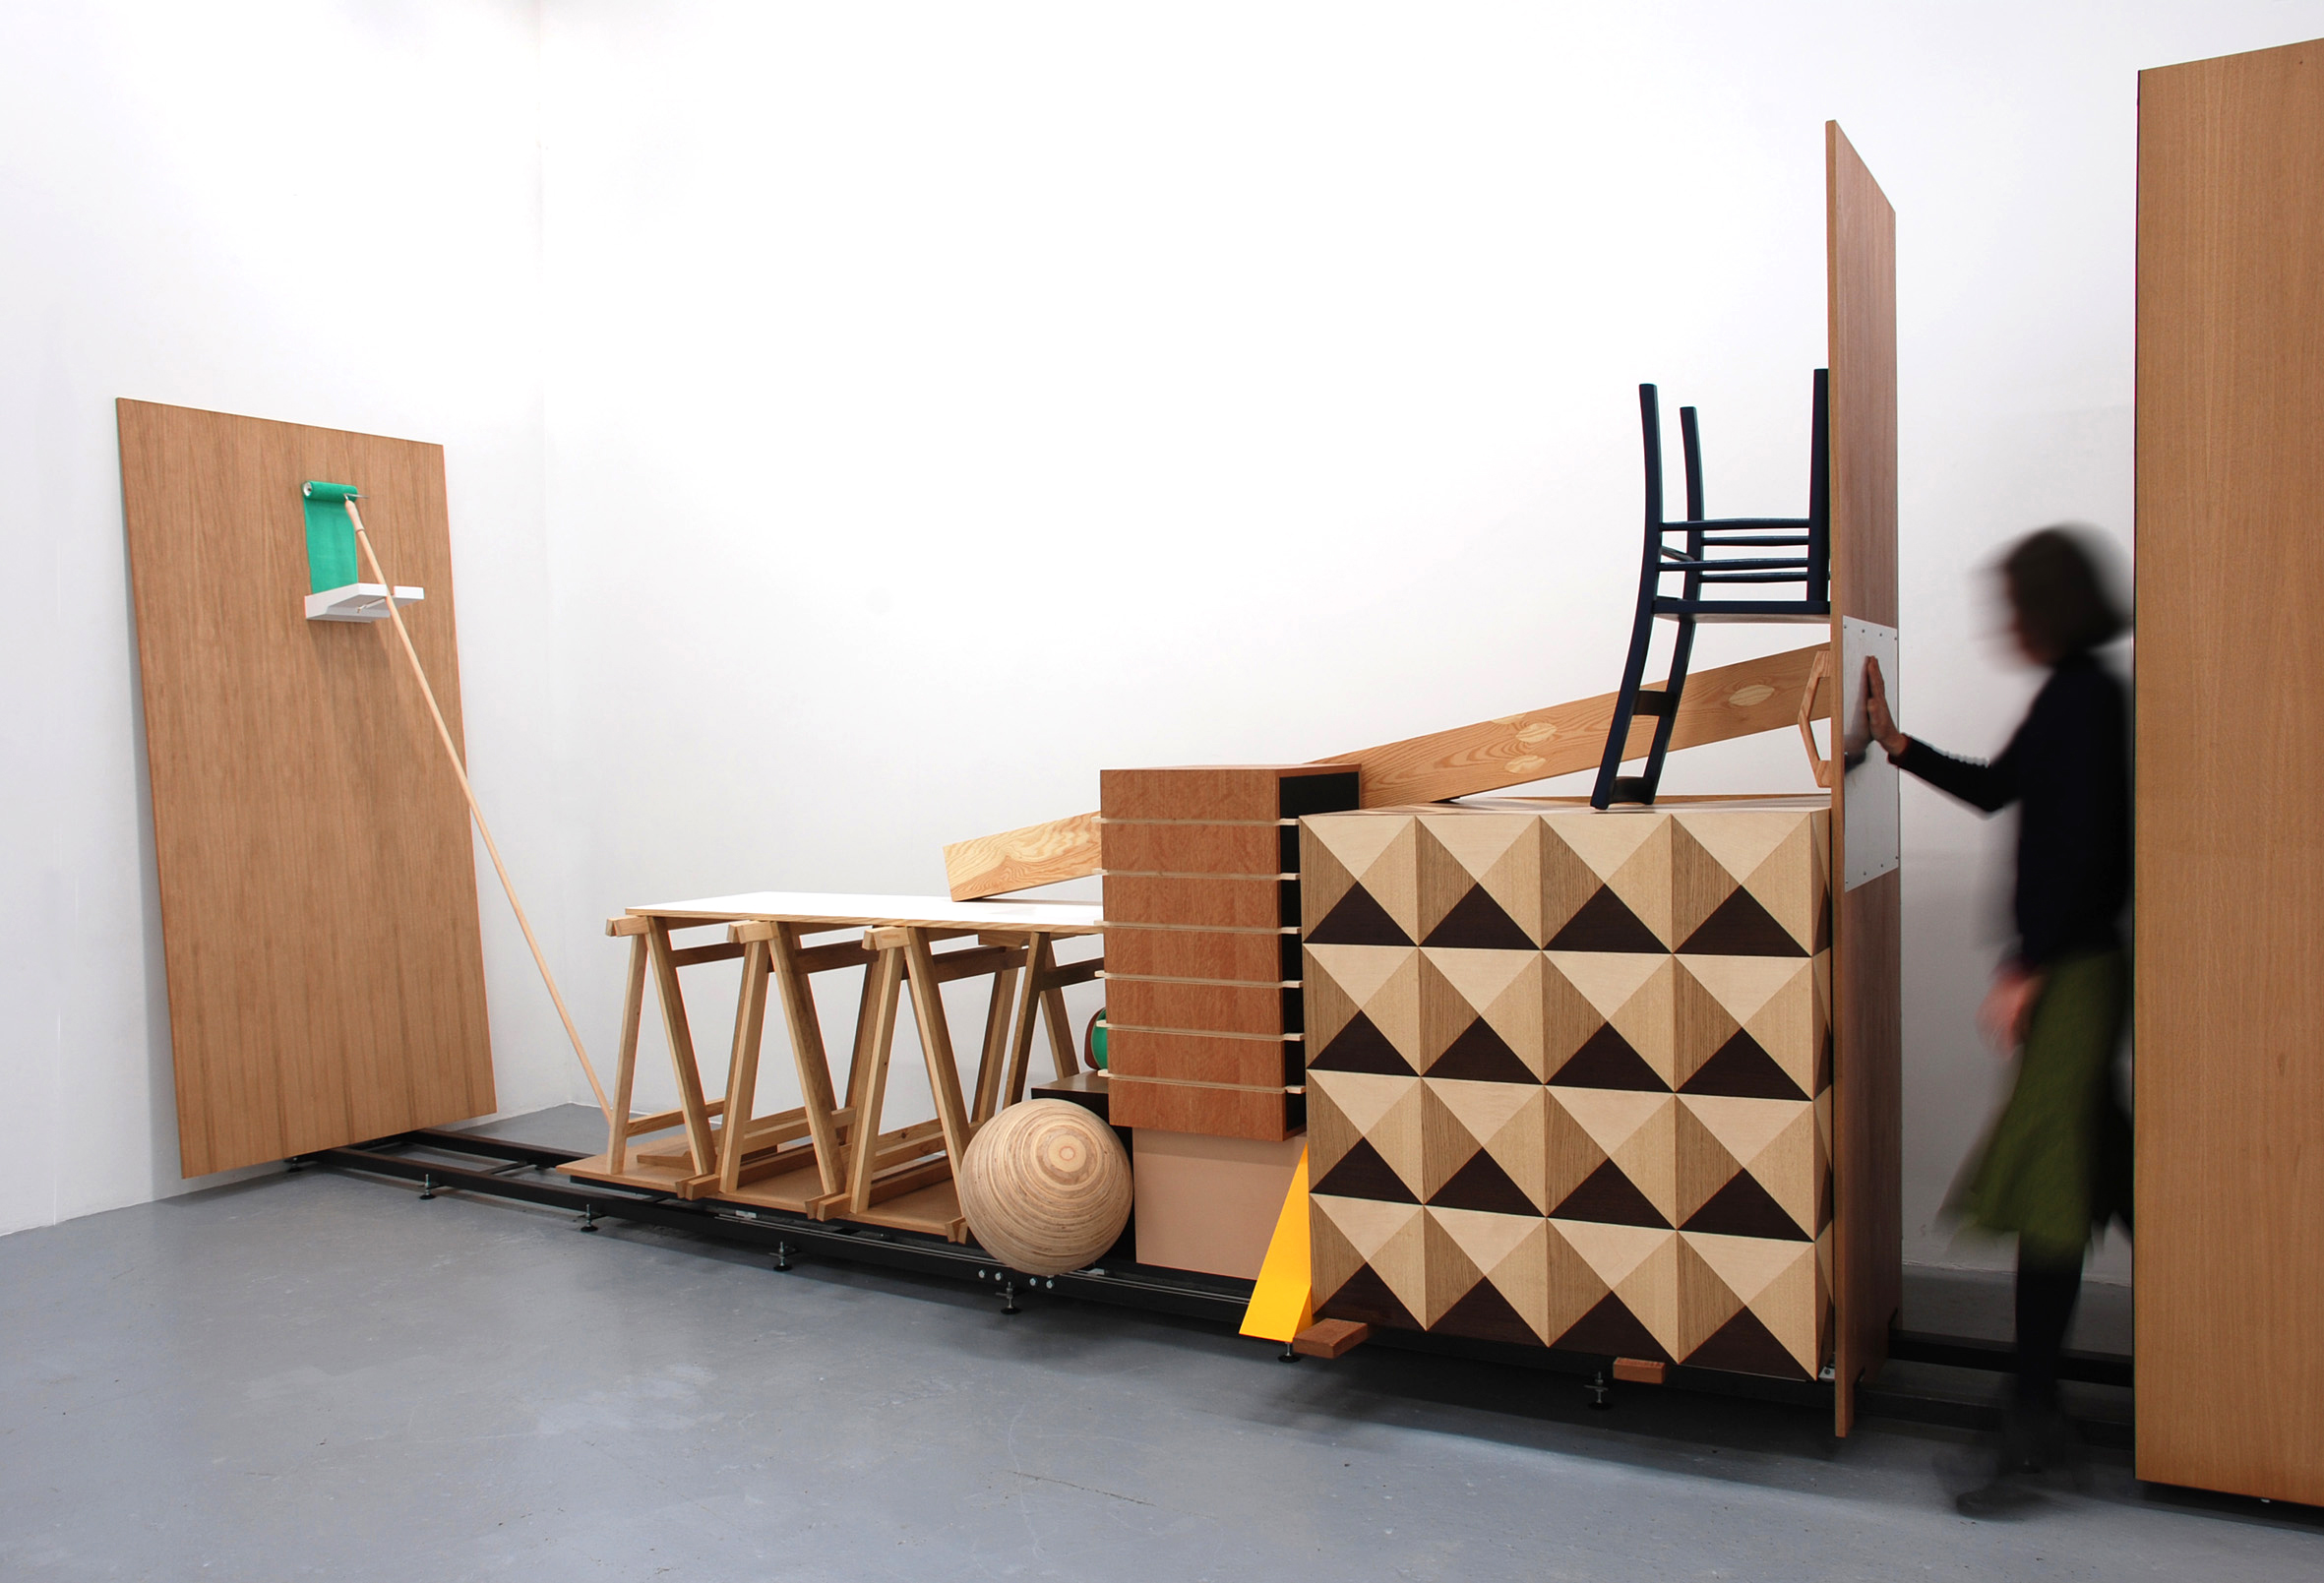 'The Traveling Riddle', 2009, hout,verf,metaal,kunststof, 245x910x132cm, Courtesy Stella Lohaus Gallery, Antwerpen